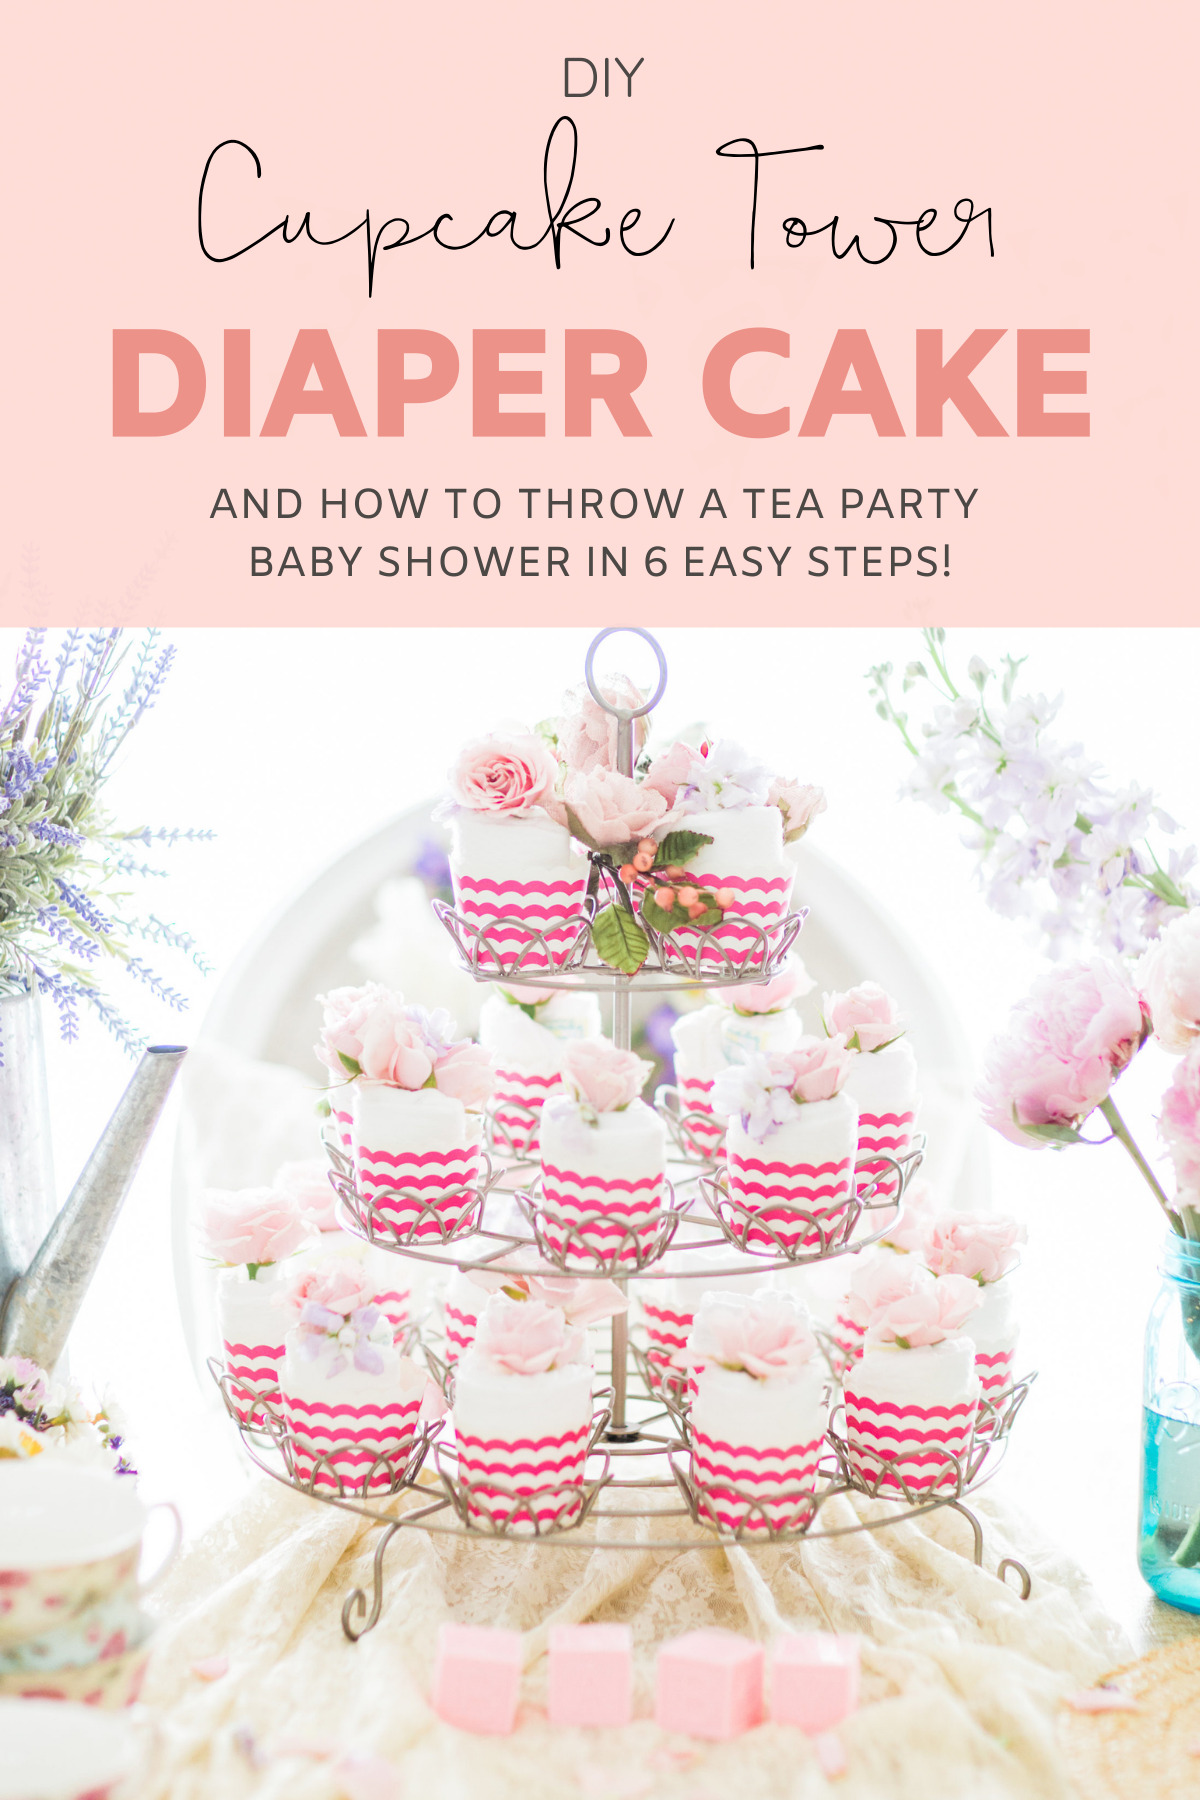 """DIY Diaper """"Cupcake Tower"""" Cake // Need inspiration for a baby shower? Why not throw the sweetest tea party baby shower? We're showing you how, in 6 easy steps. Plus, a spin on a traditional diaper cake: the diaper cupcake stand! 